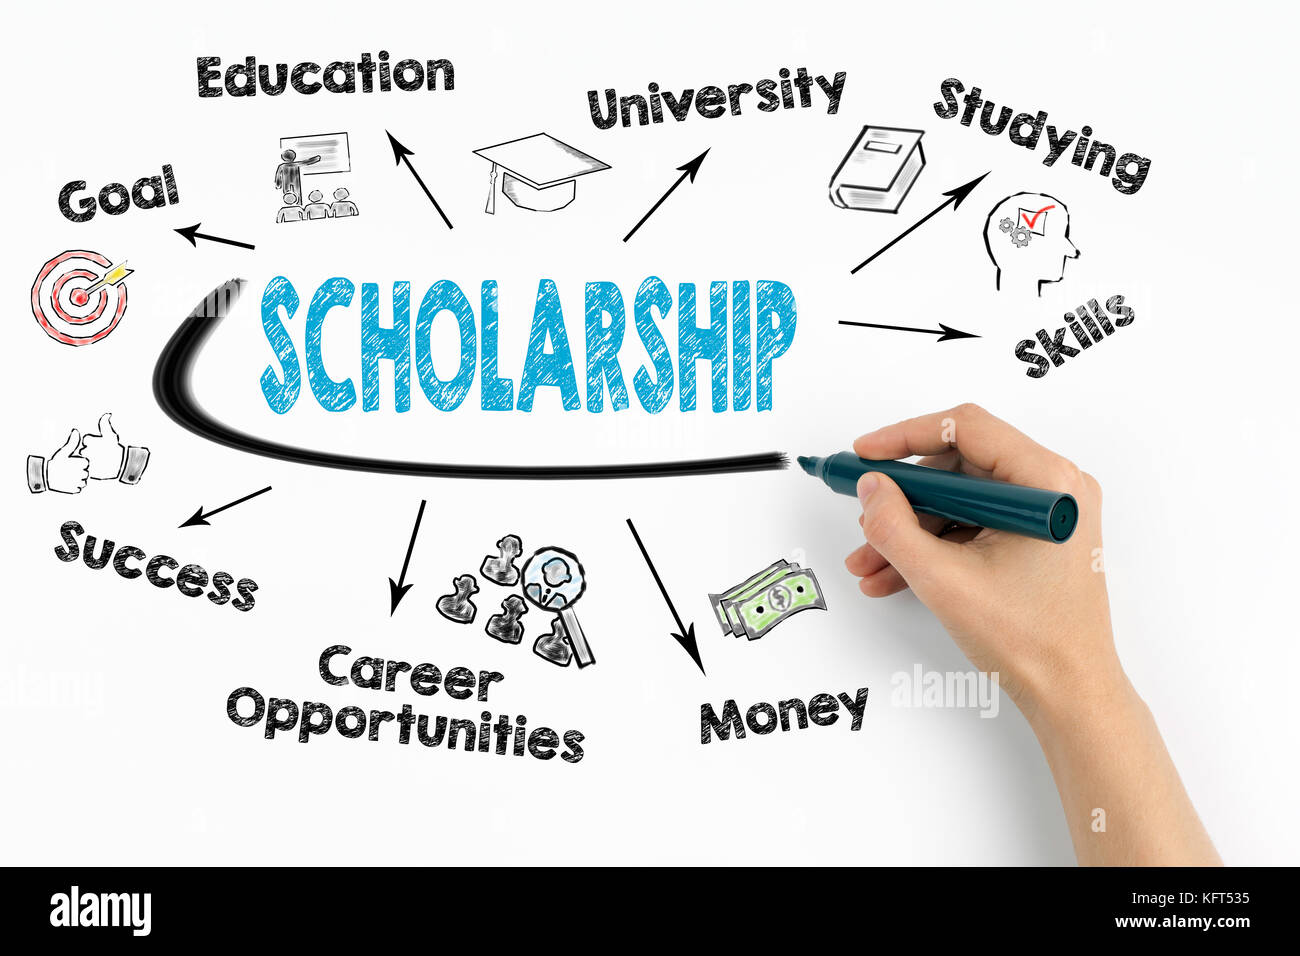 scholarship Concept. Chart with keywords and icons on white background - Stock Image